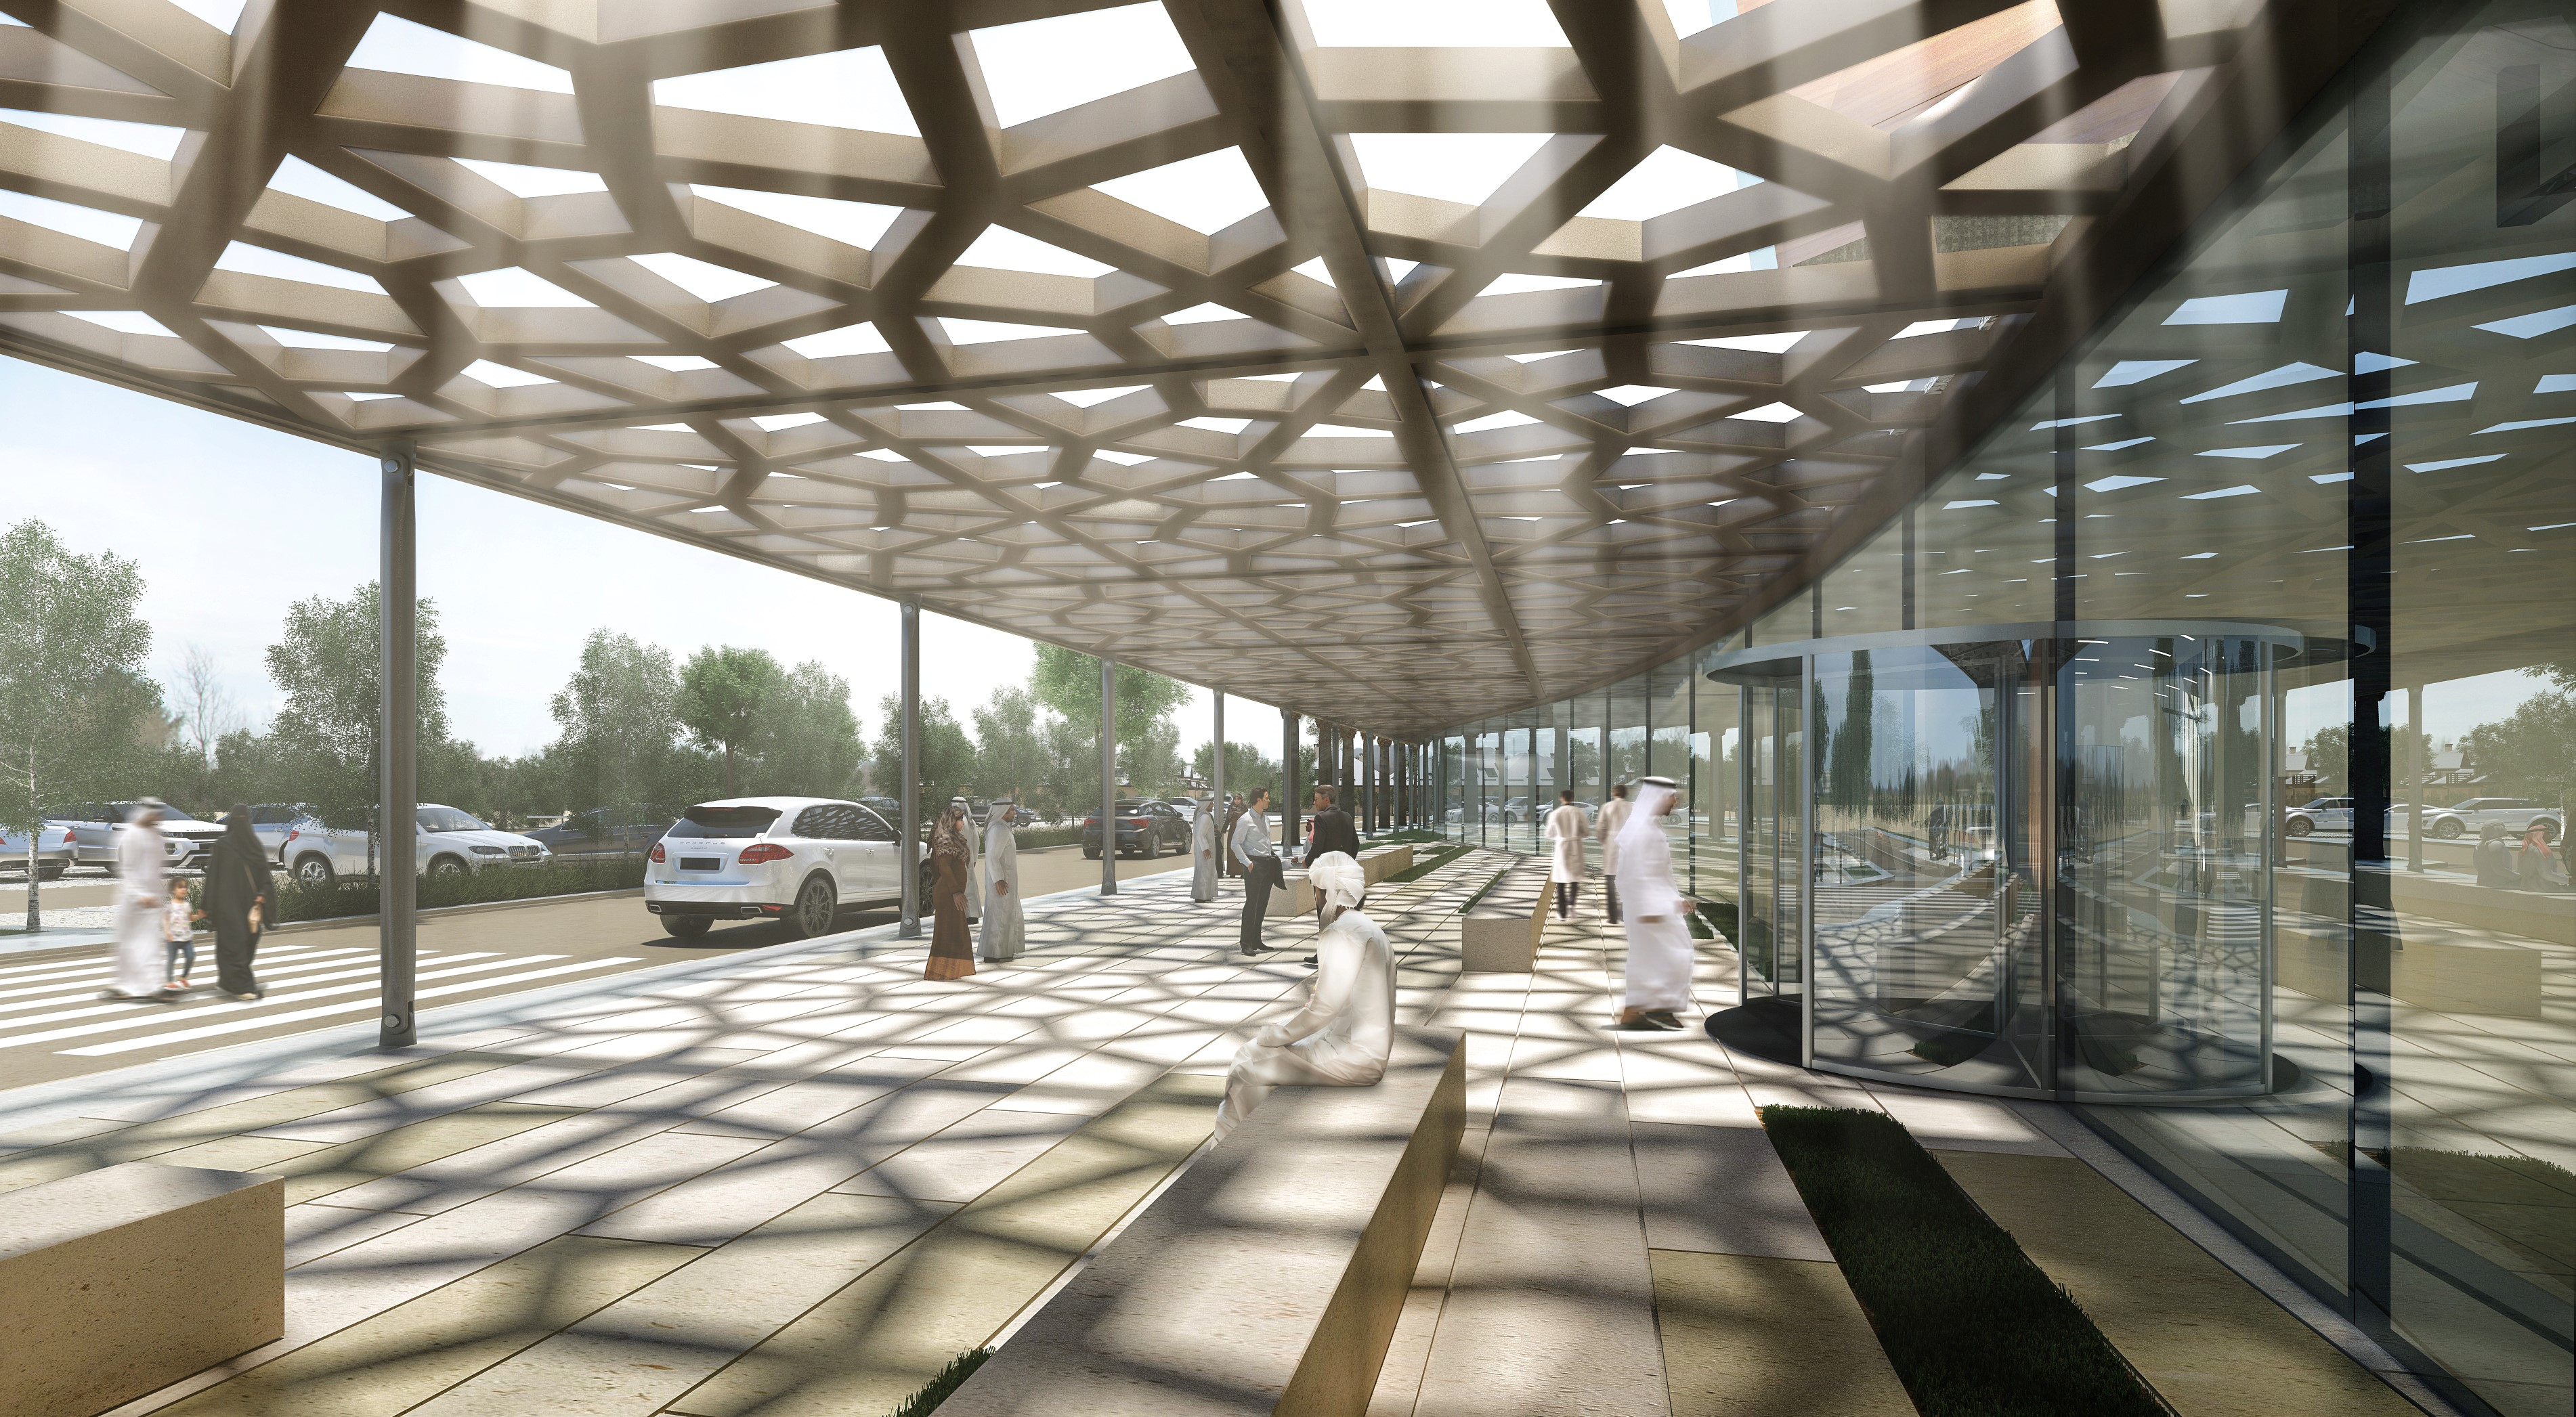 H a wins design contract for first proton beam therapy for Hispano international decor llc abu dhabi